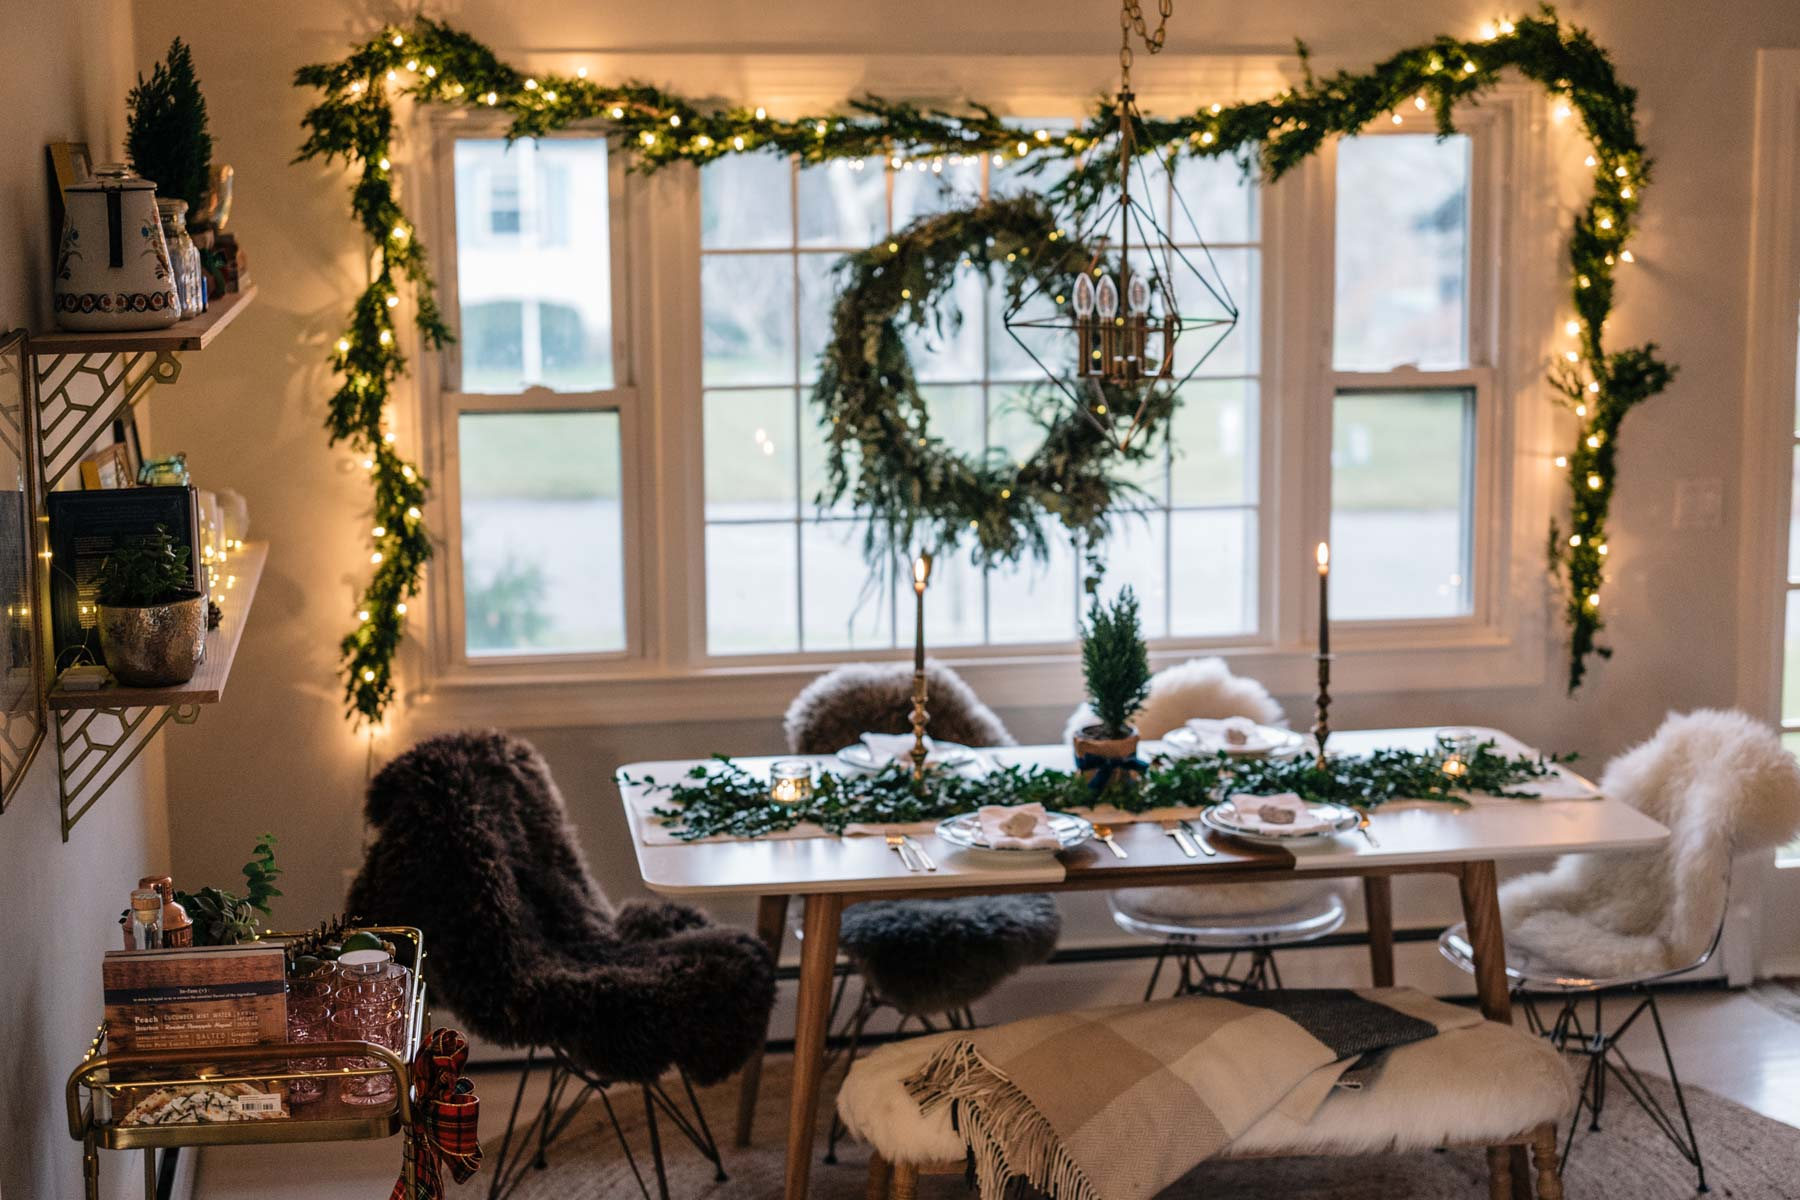 Jess Ann Kirby decorates her home for the holidays with simple items like garland and twinkle lights